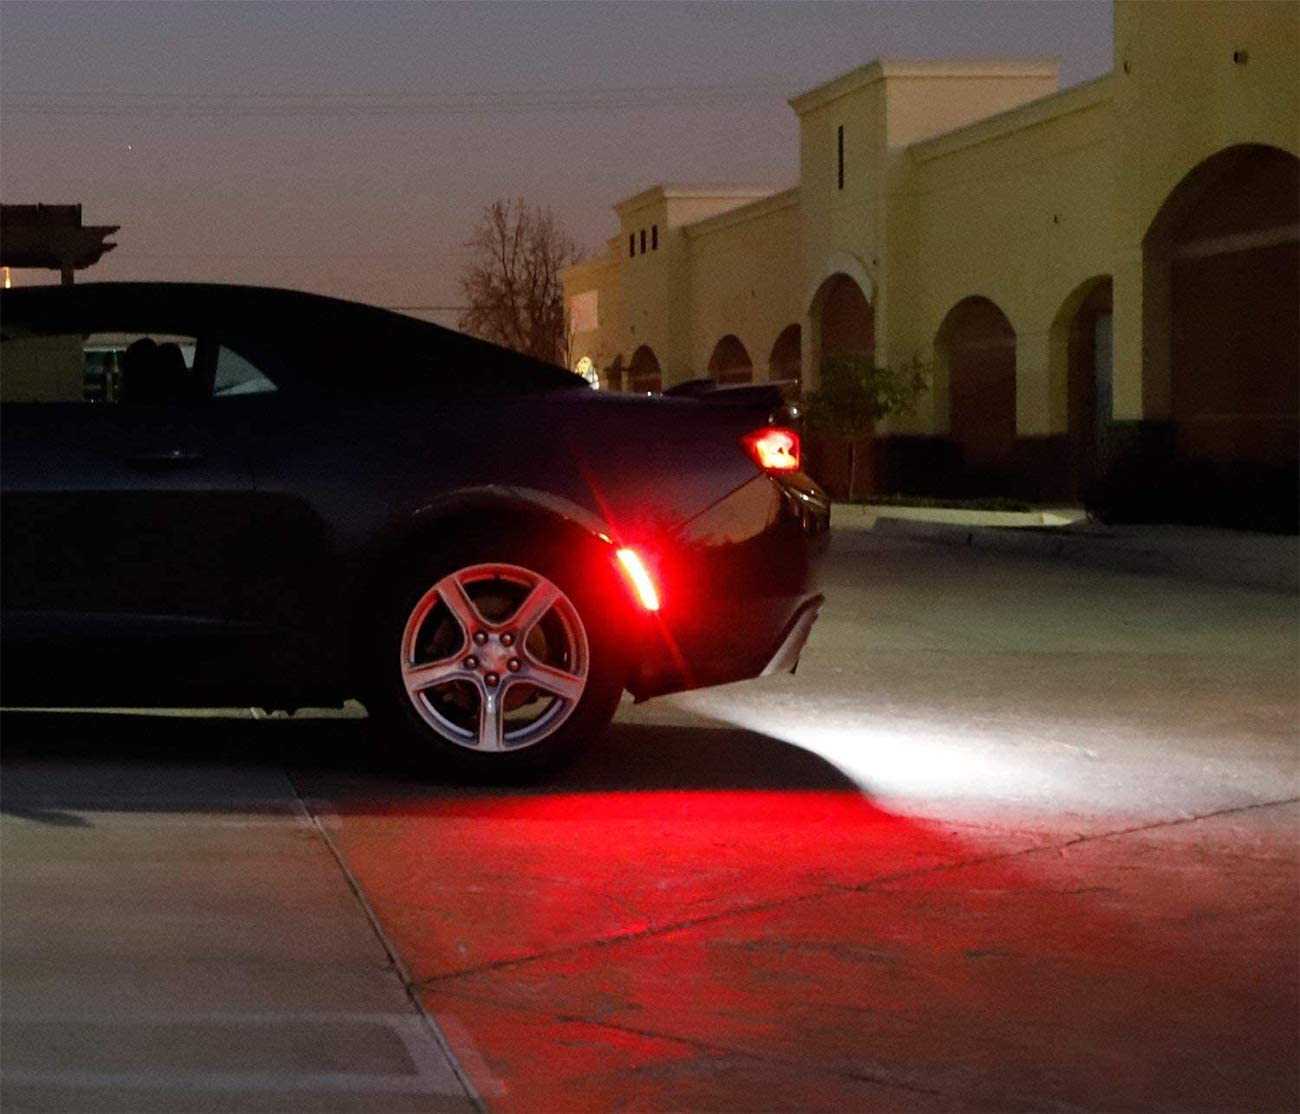 Powered by 50-SMD LED Pack of 2 Replace OEM Back Sidemarker Lamps Neeknn Smoked Lens Red Full LED Rear Side Marker Light Kit Compatible With 2015-up Dodge Charger